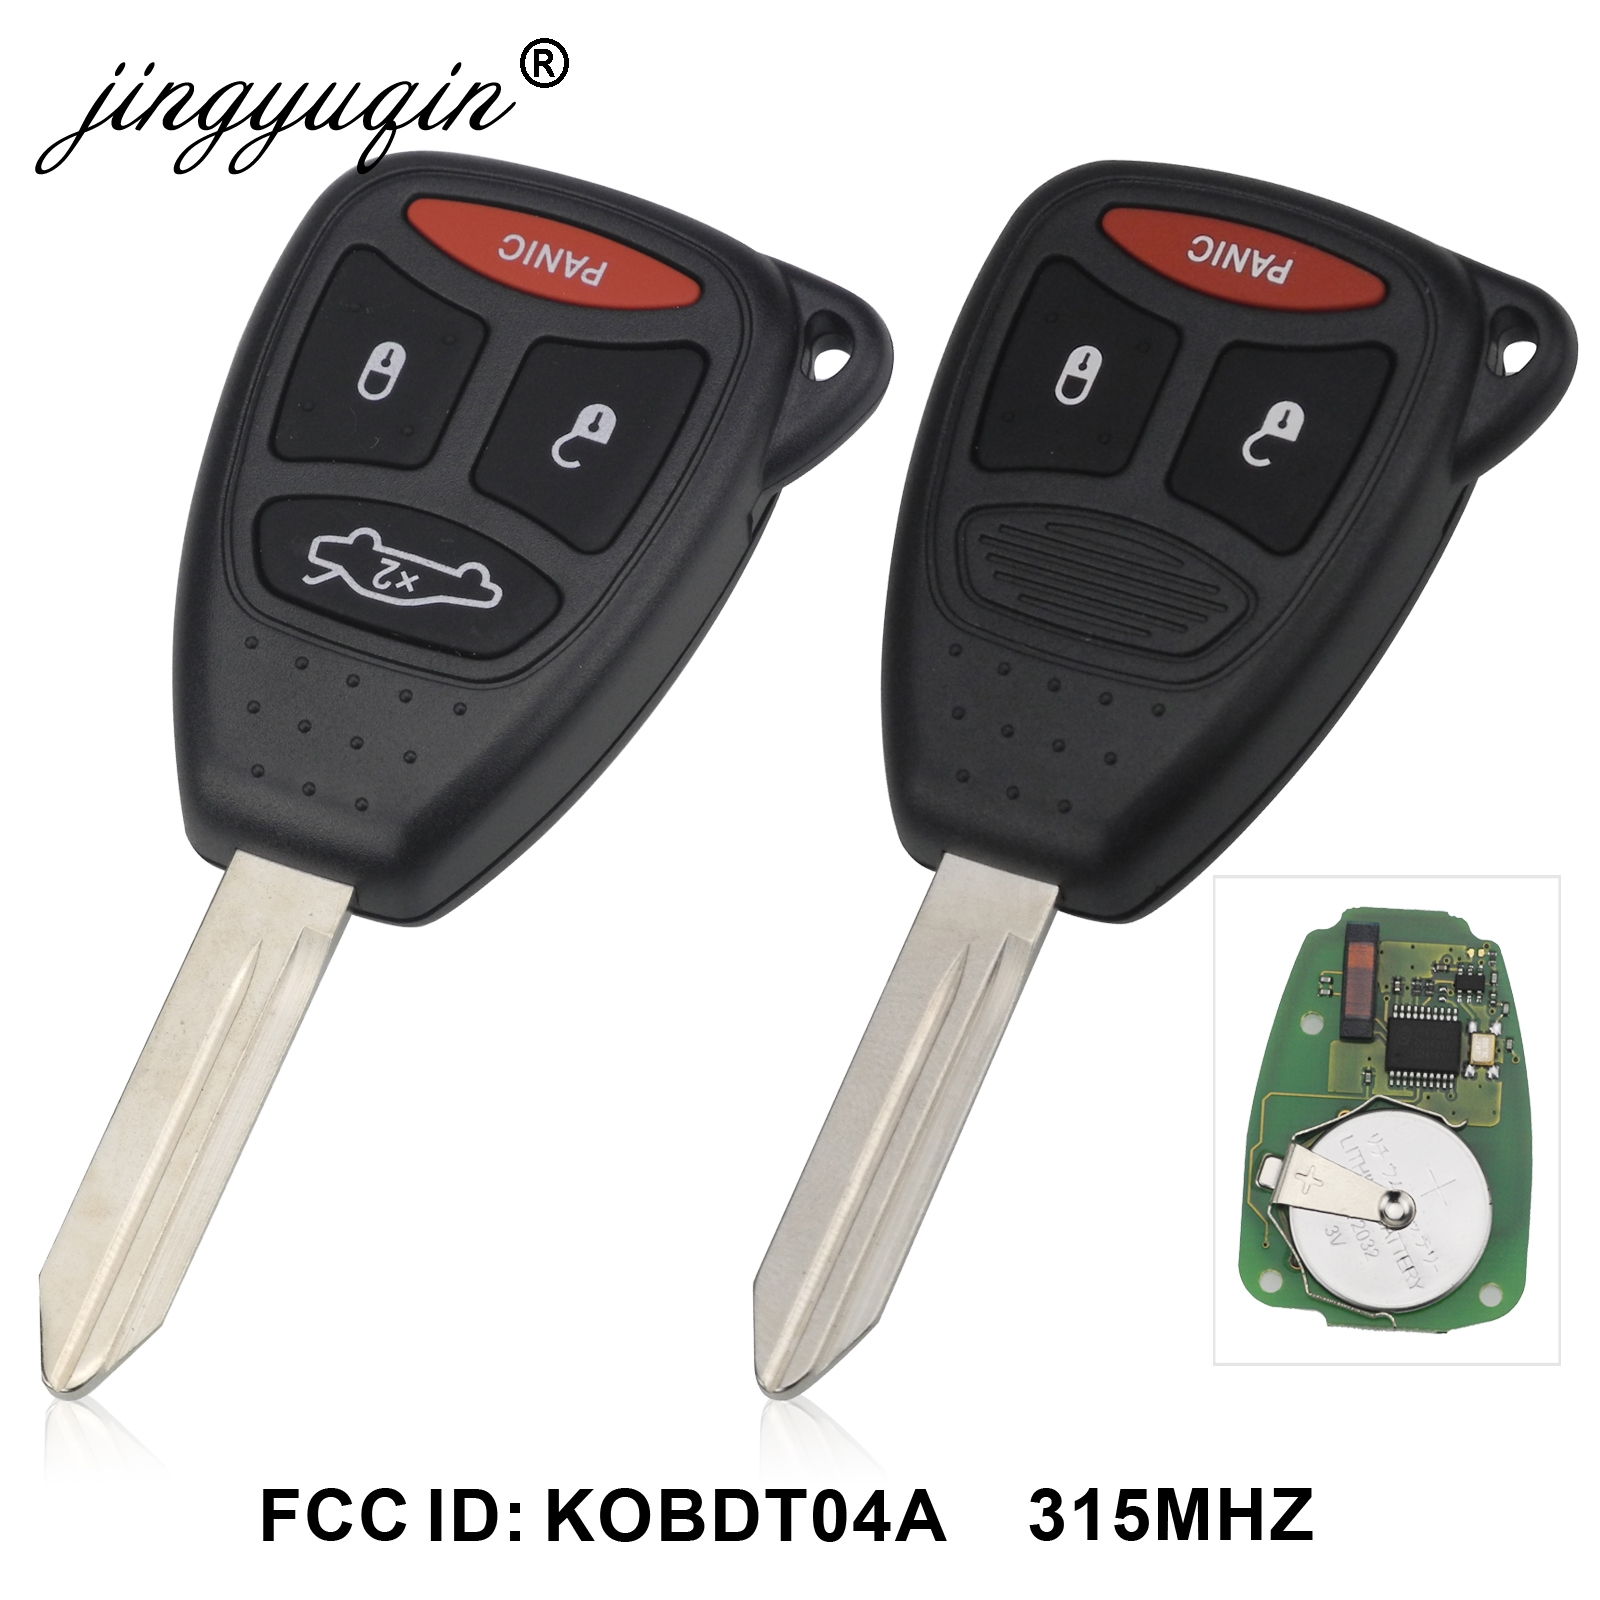 jingyuqin 315mhz KOBDT04A Remote Car key 3/4 Button for Dodge Chrysler Jeep Dakota Durango Charger 300 Aspen Grand Cherokee-in Car Key from Automobiles & Motorcycles